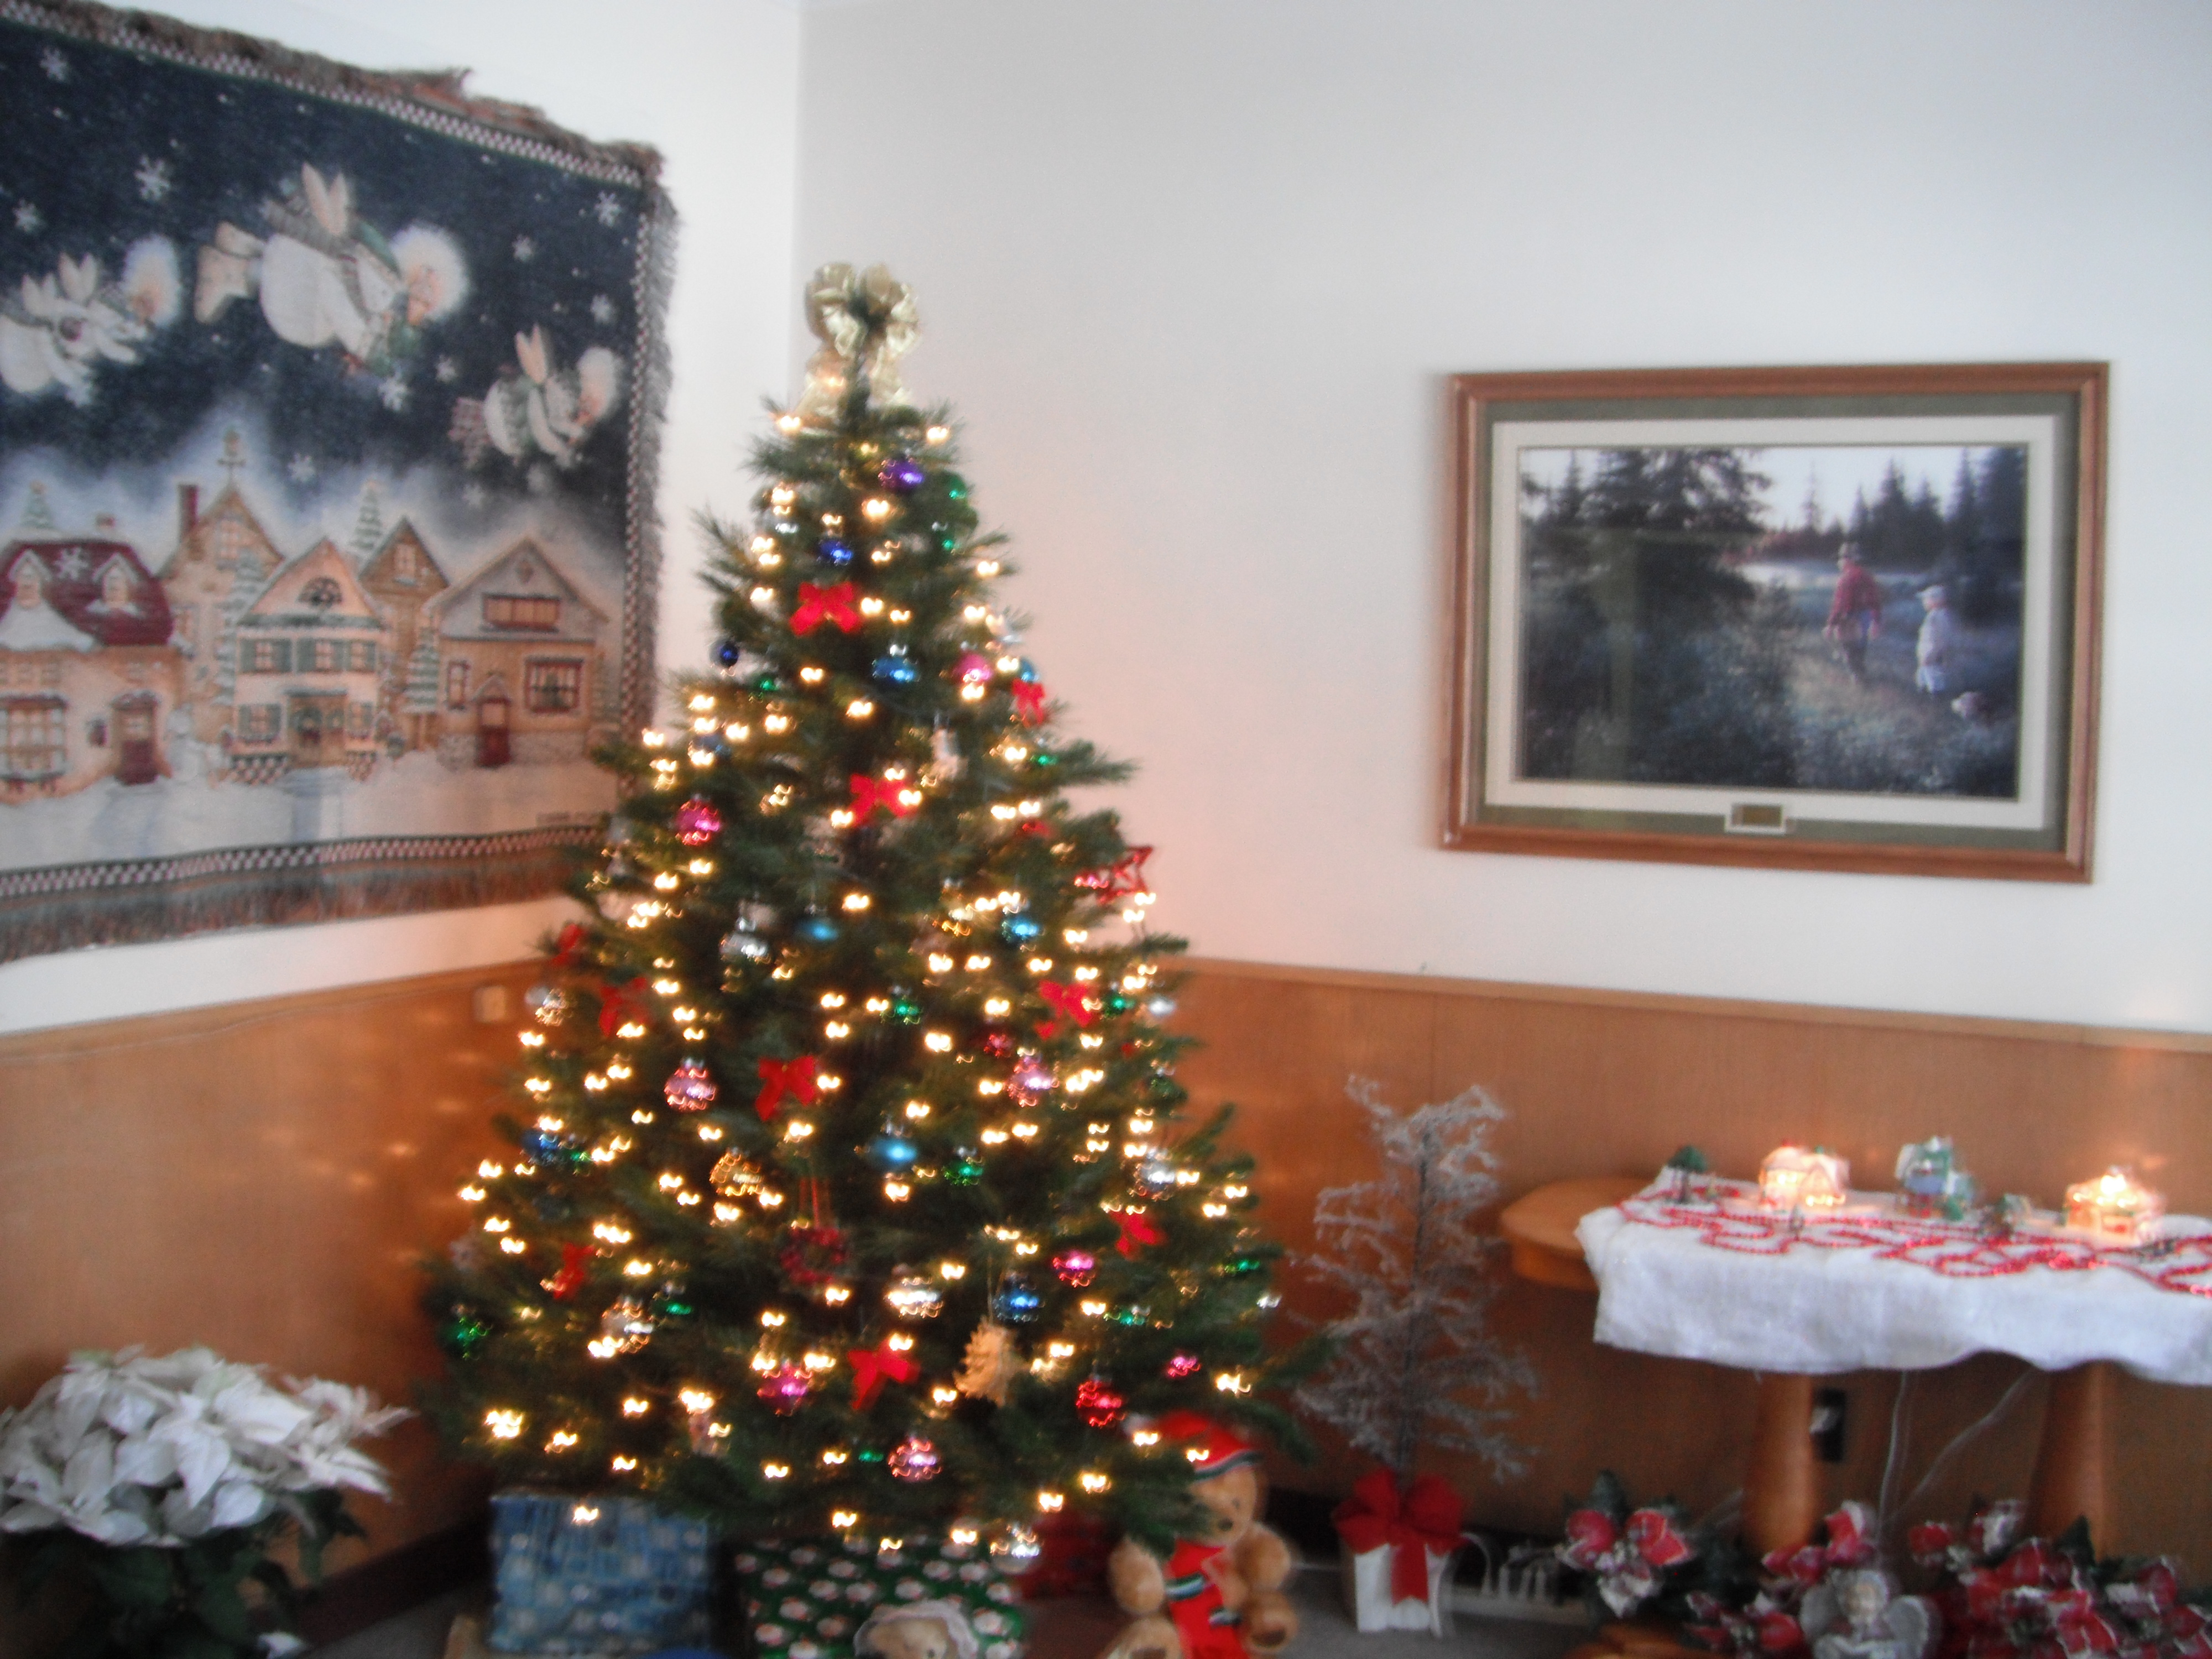 Christmas Tree Decorated With Teddy Bears Christmas Tree And Decorations